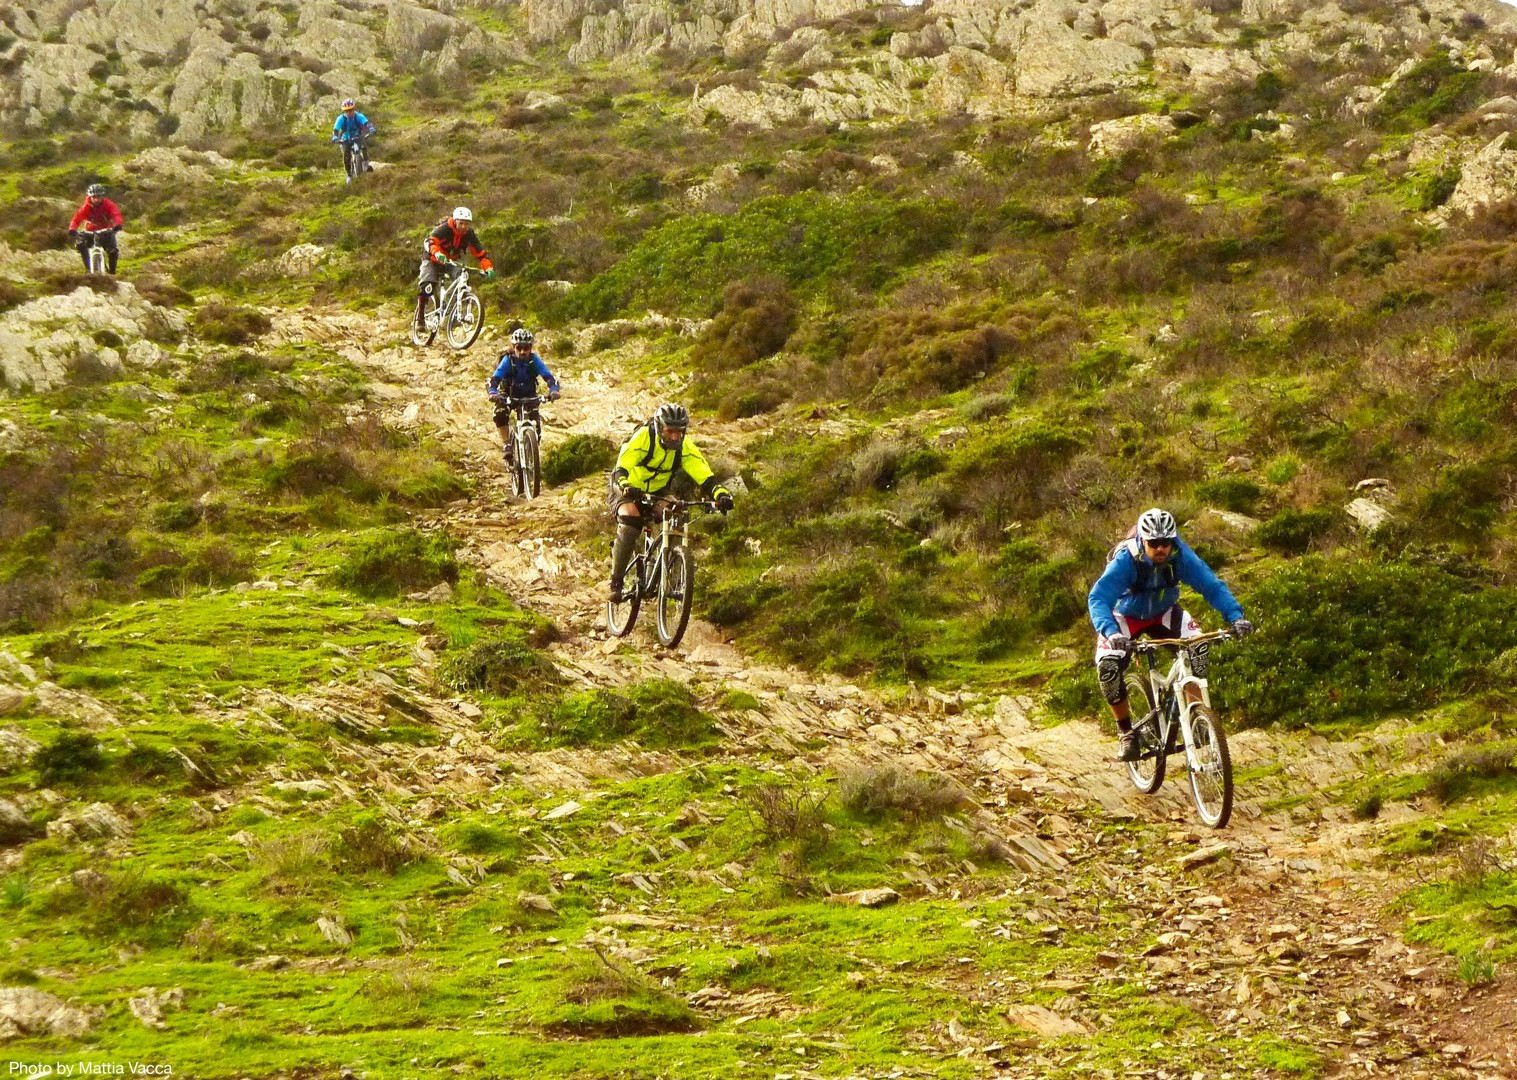 mountain-bike-holiday-enduro-in-italy-sardinia.jpg - Sardinia - Sardinian Enduro - Guided Mountain Bike Holiday - Mountain Biking